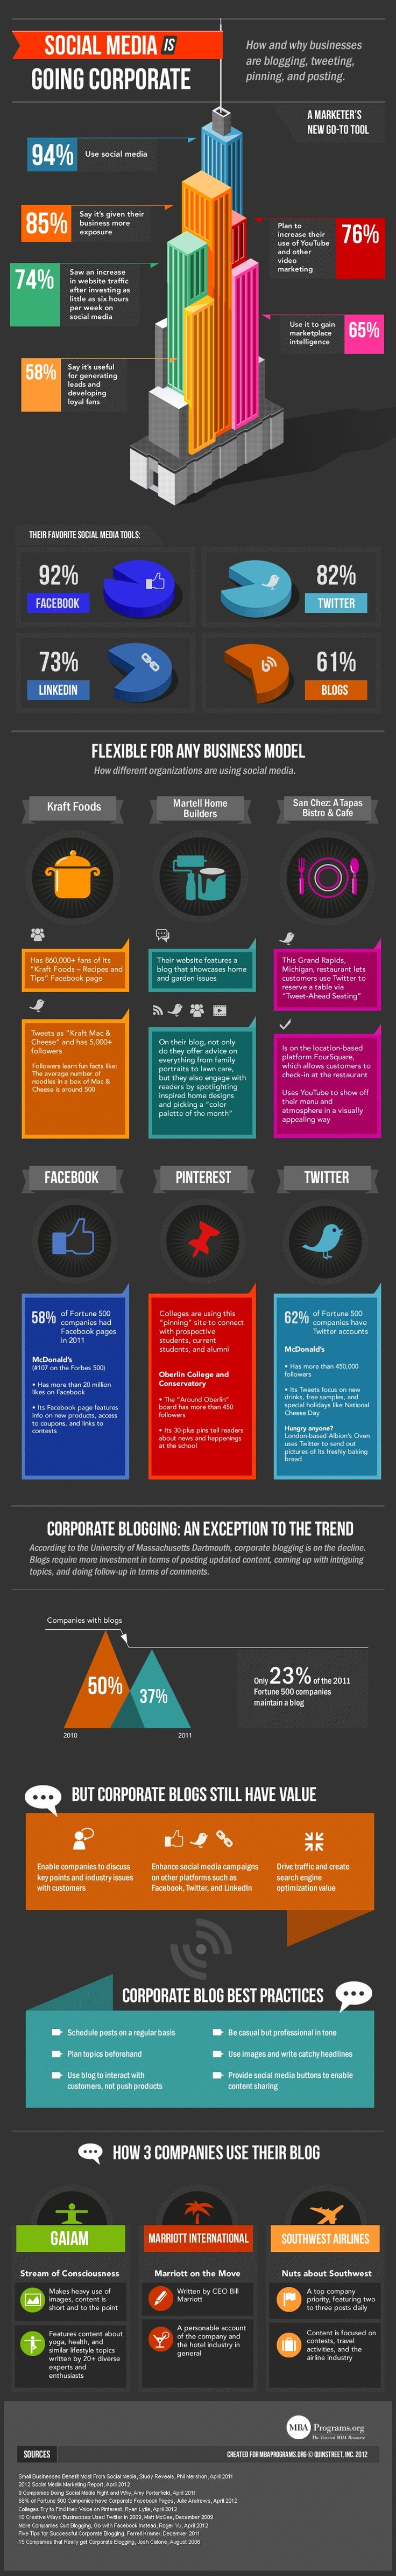 Social Media Is Going Corporate #Infographic